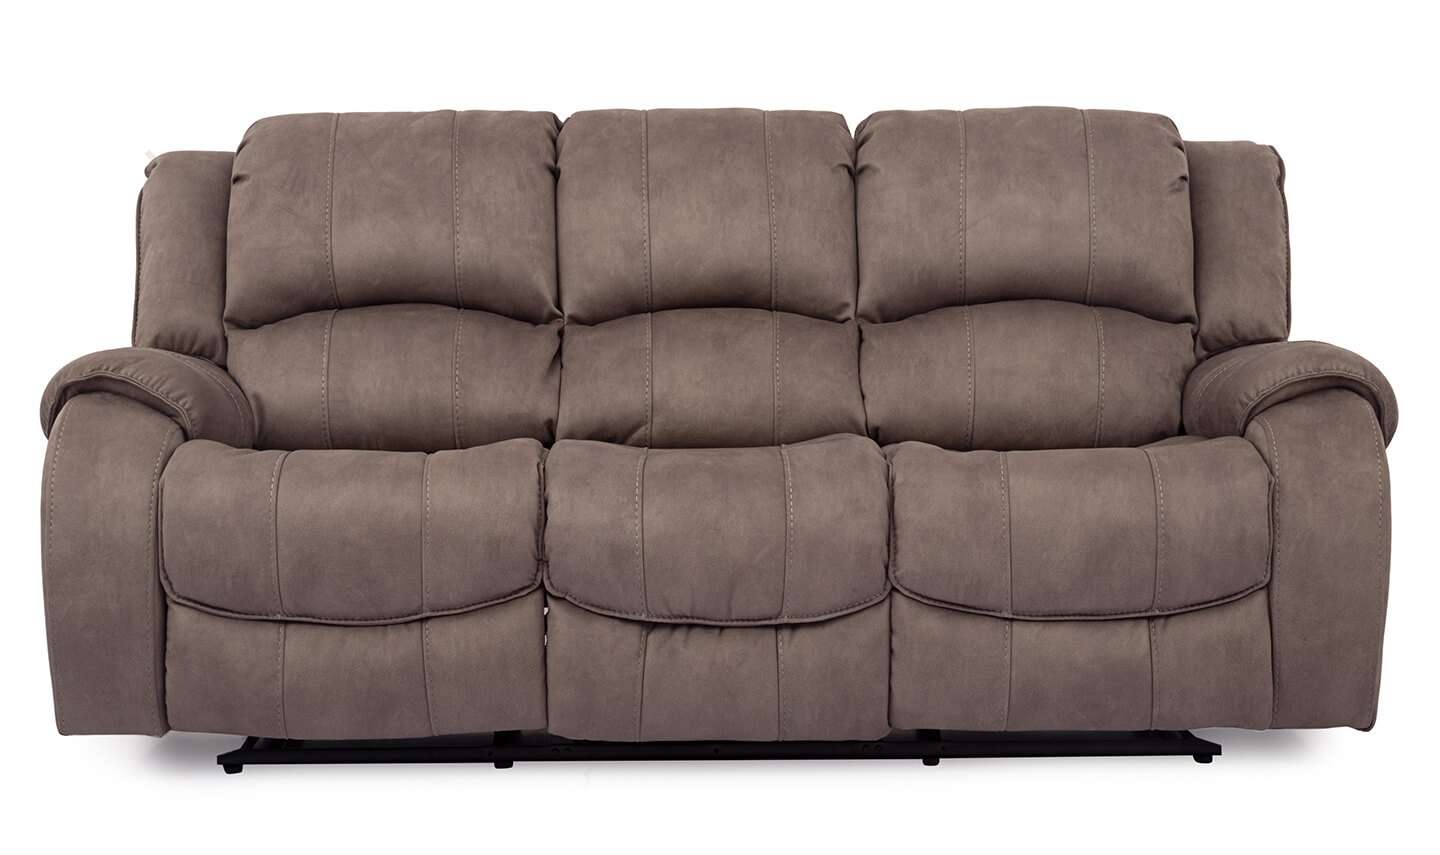 Darwin 3 Seater Recliner Smoke